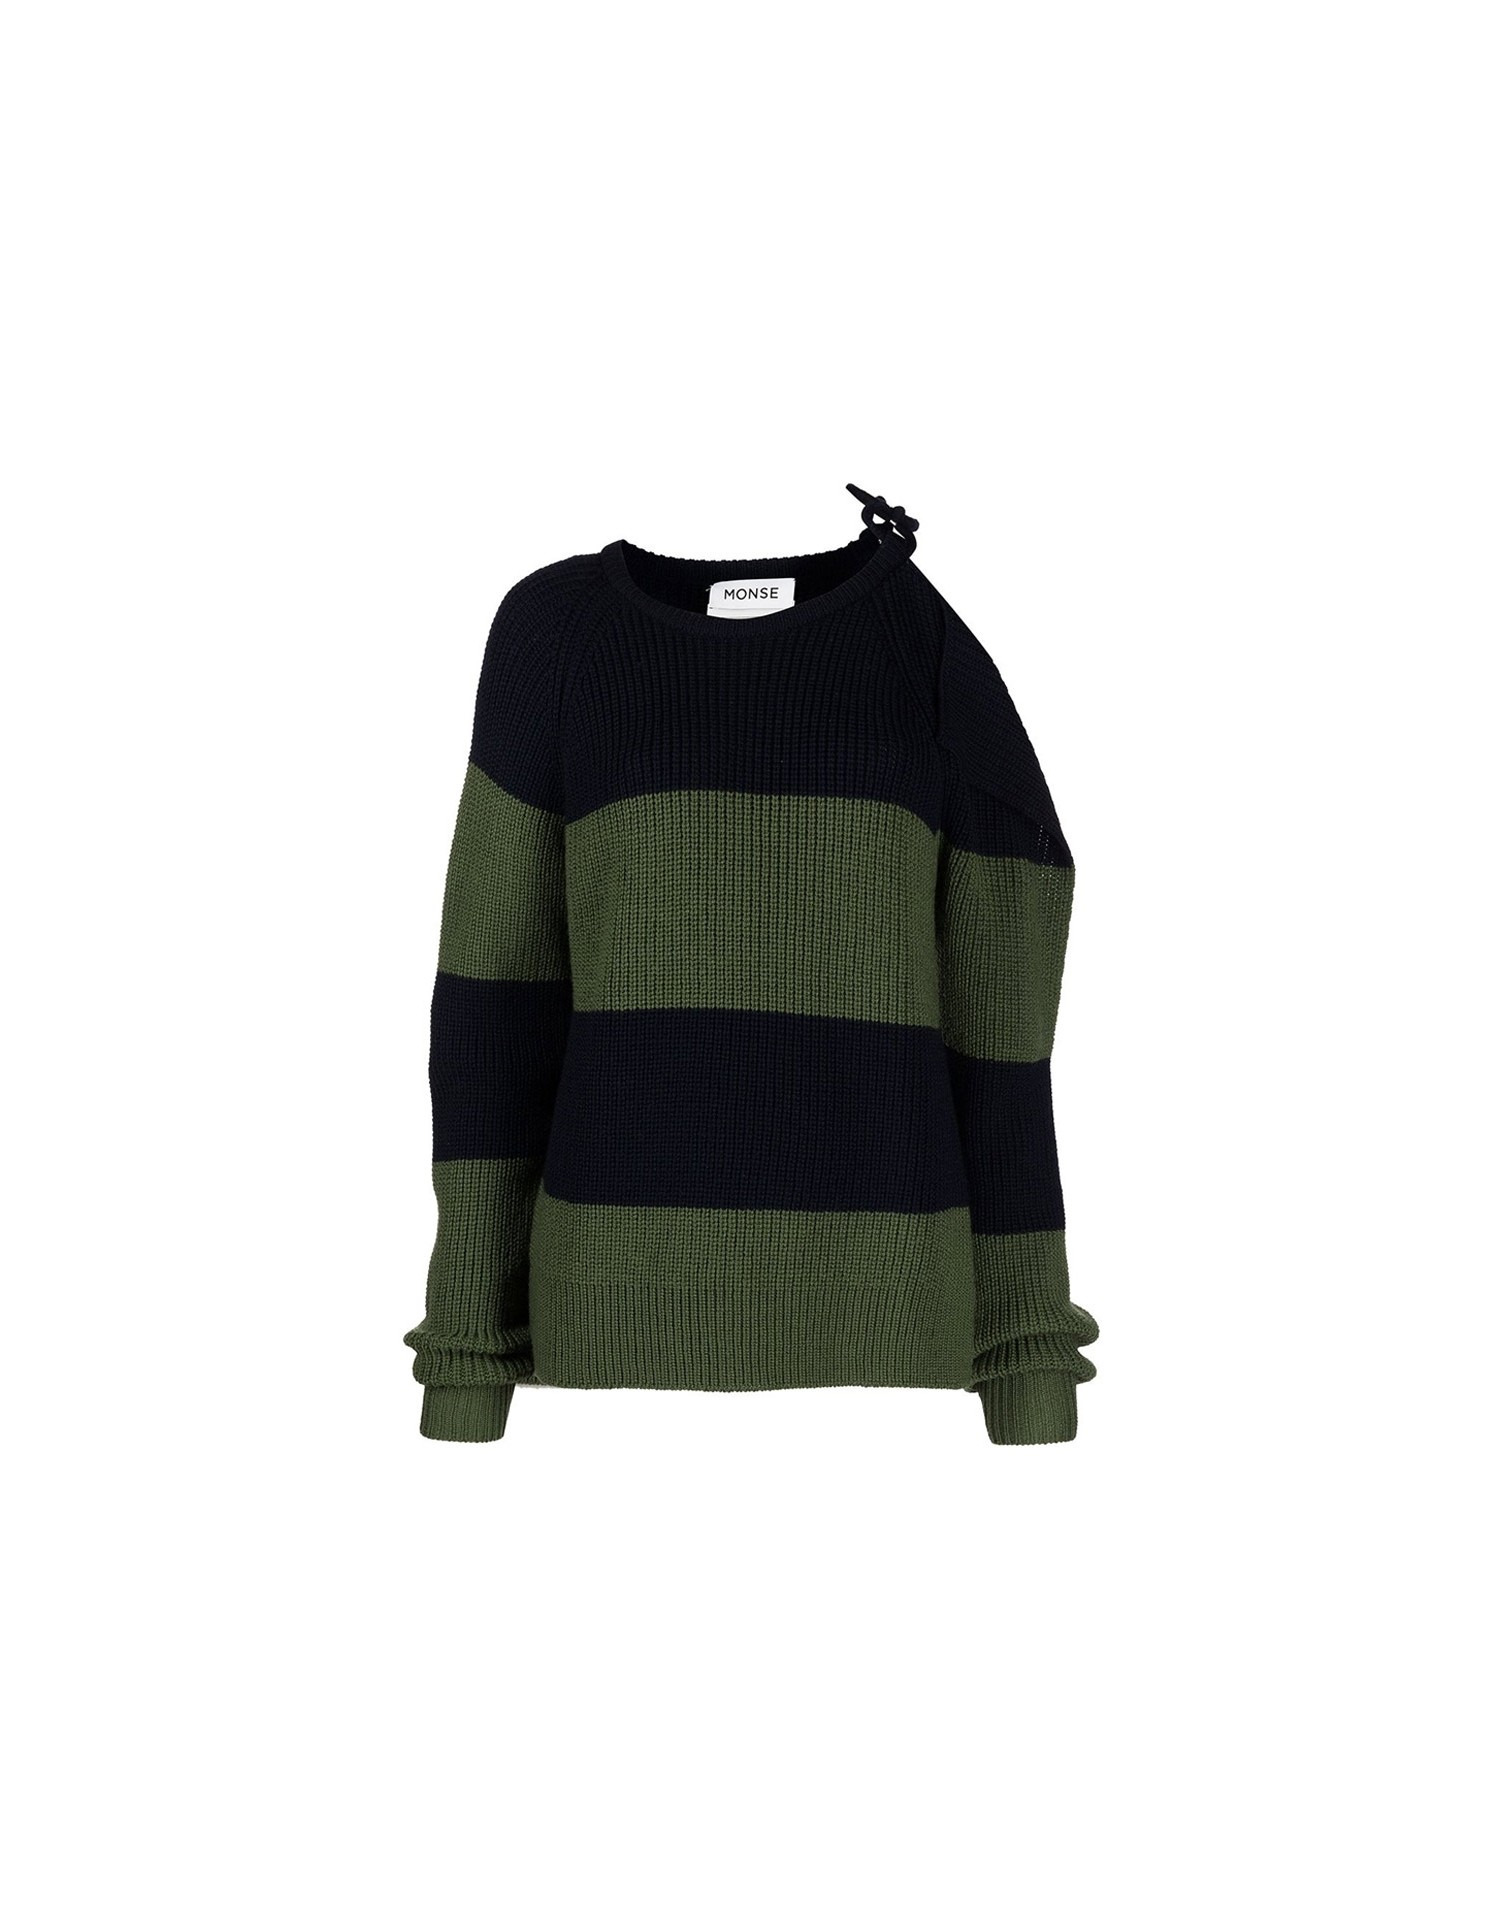 MONSE Stripe Buckle Shoulder Sweater in Midnight and Olive Flat Front